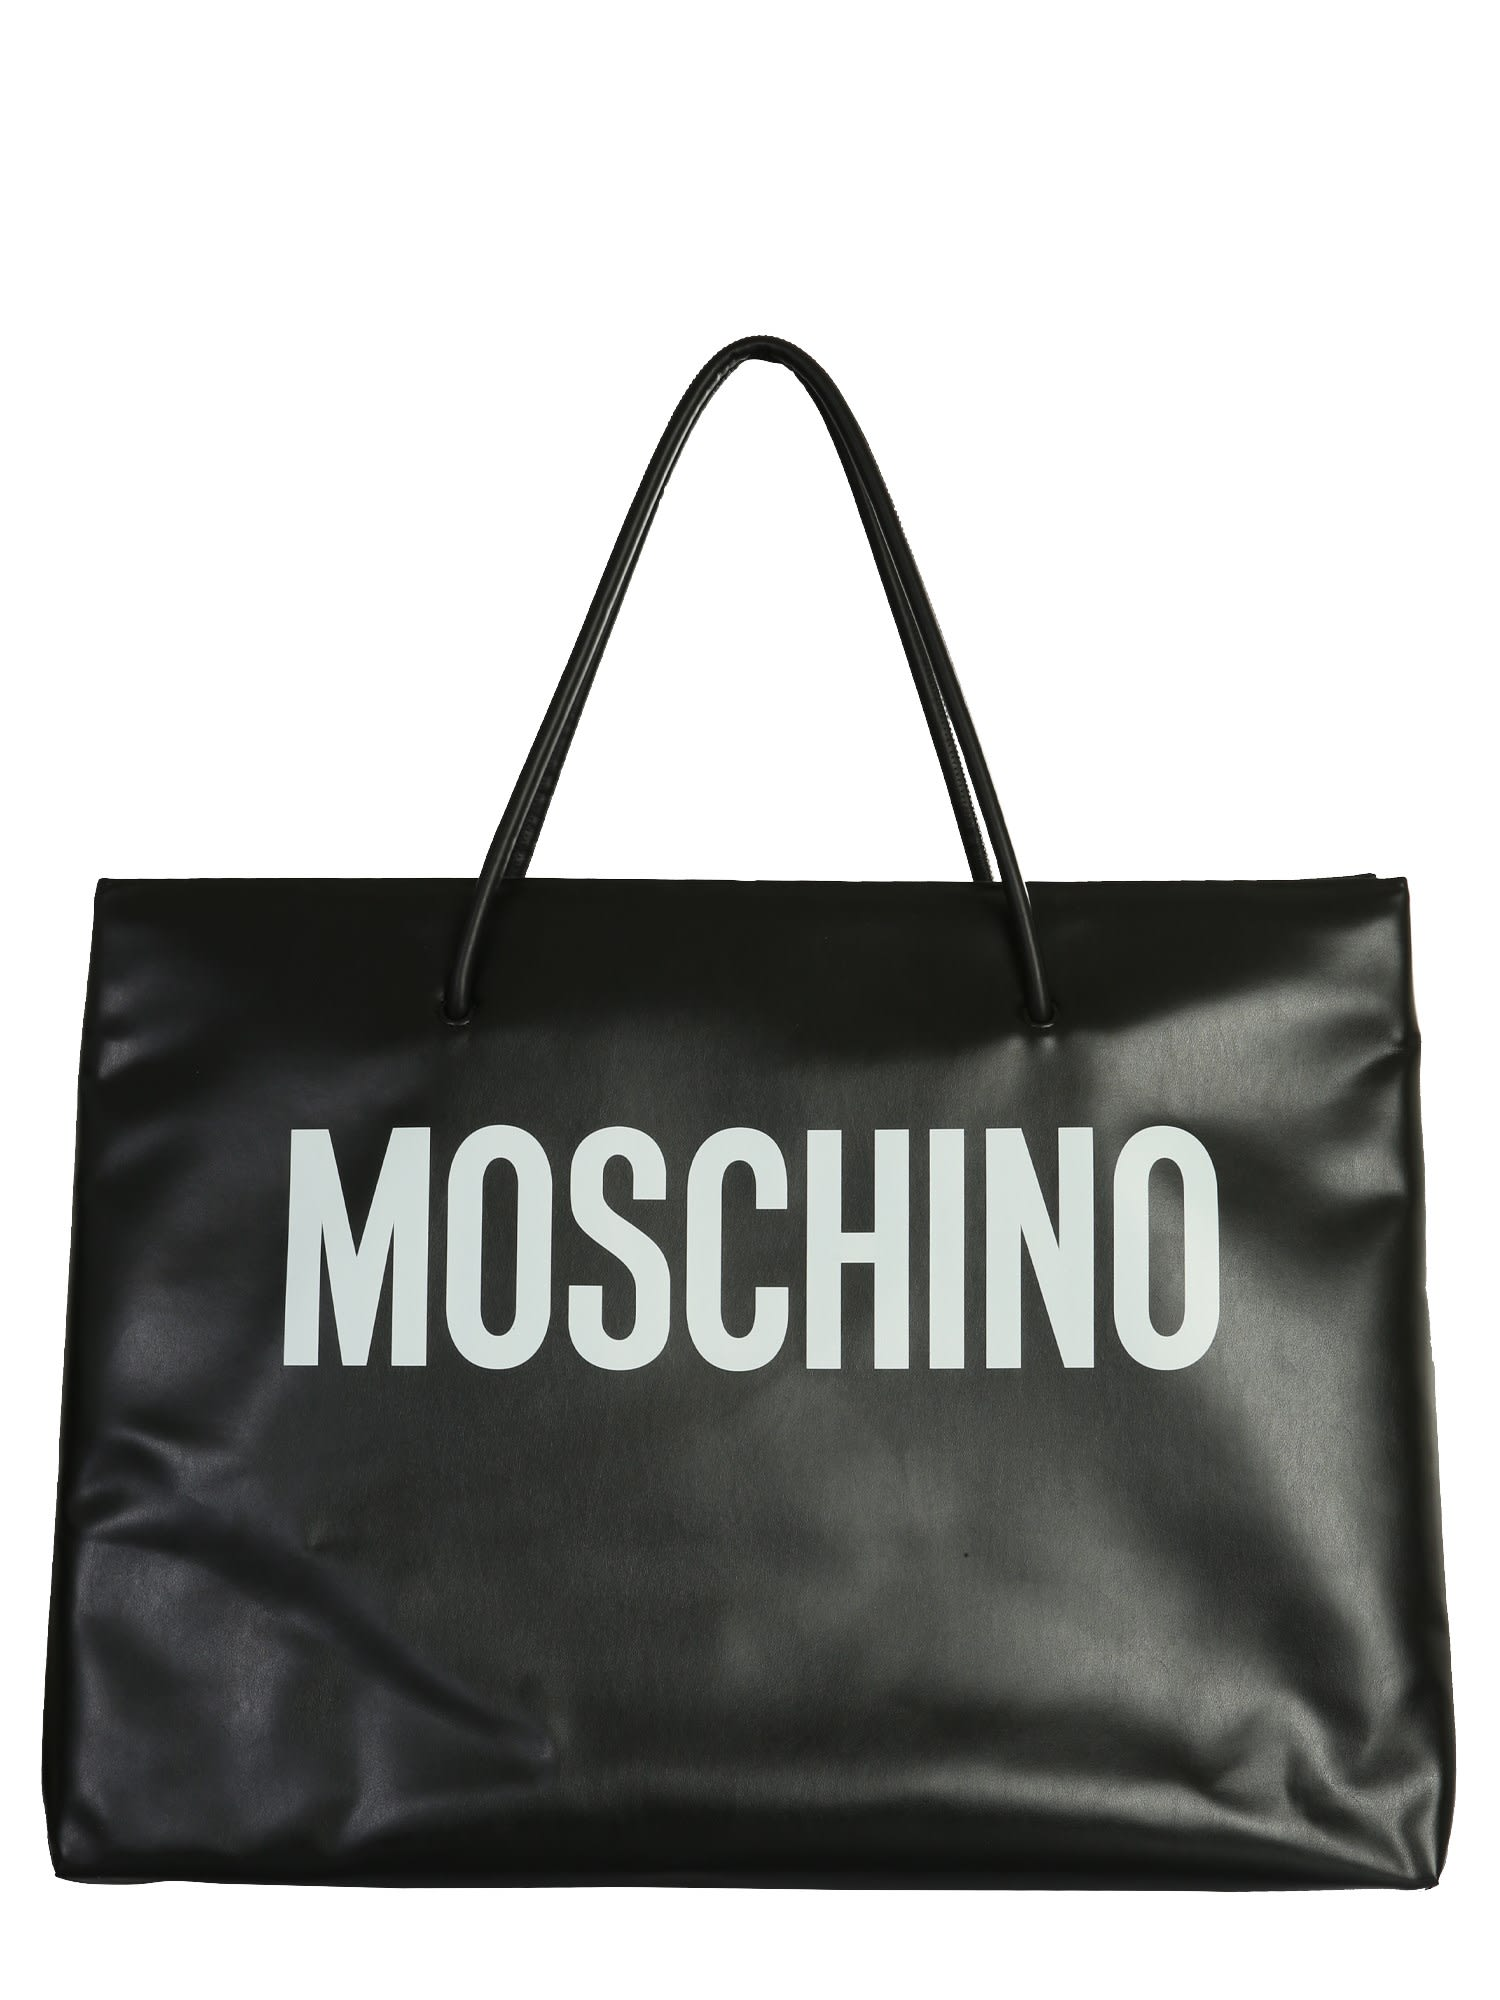 Moschino Leathers BAG WITH LOGO